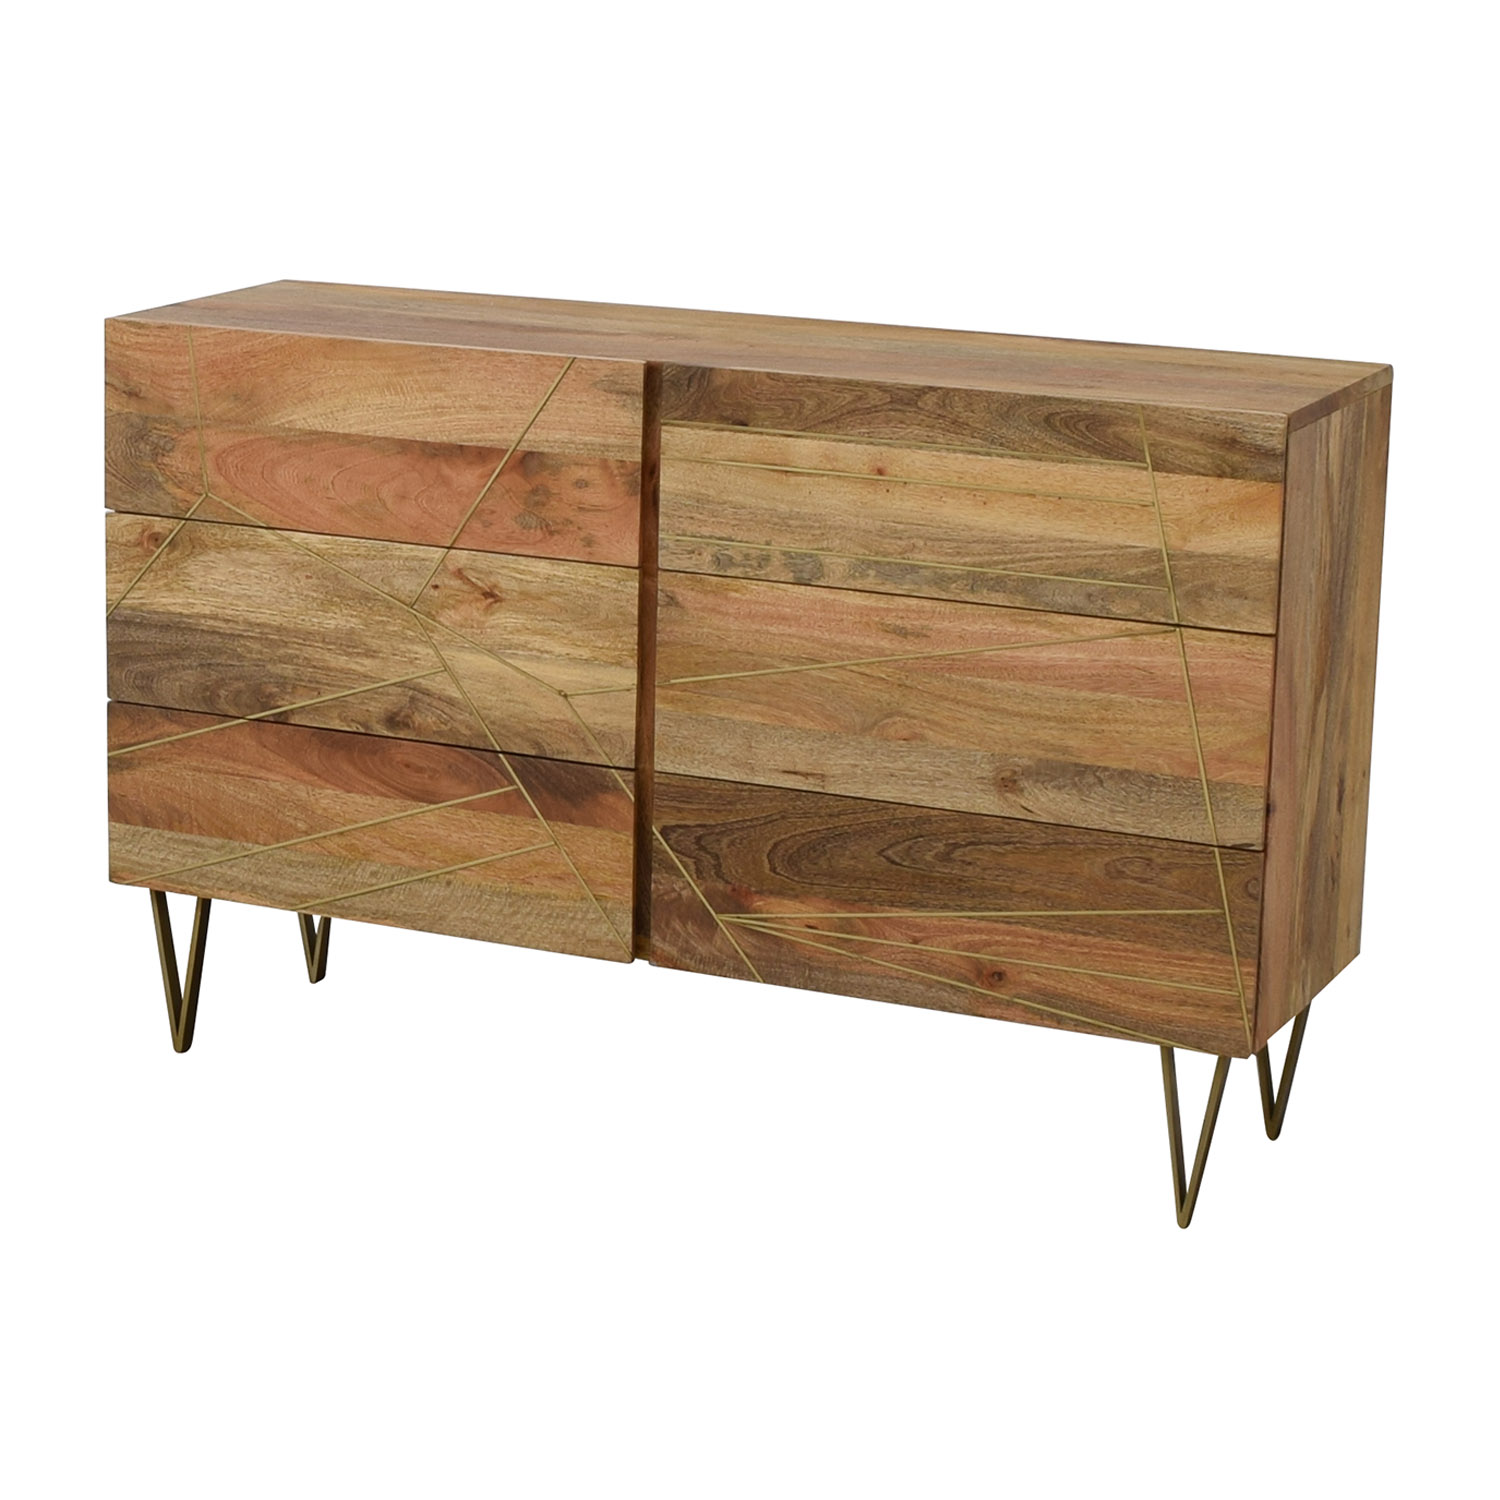 shop West Elm West Elm Roar + Rabbit Brass Geo Inlay Raw Mango Six-Drawer Dresser online